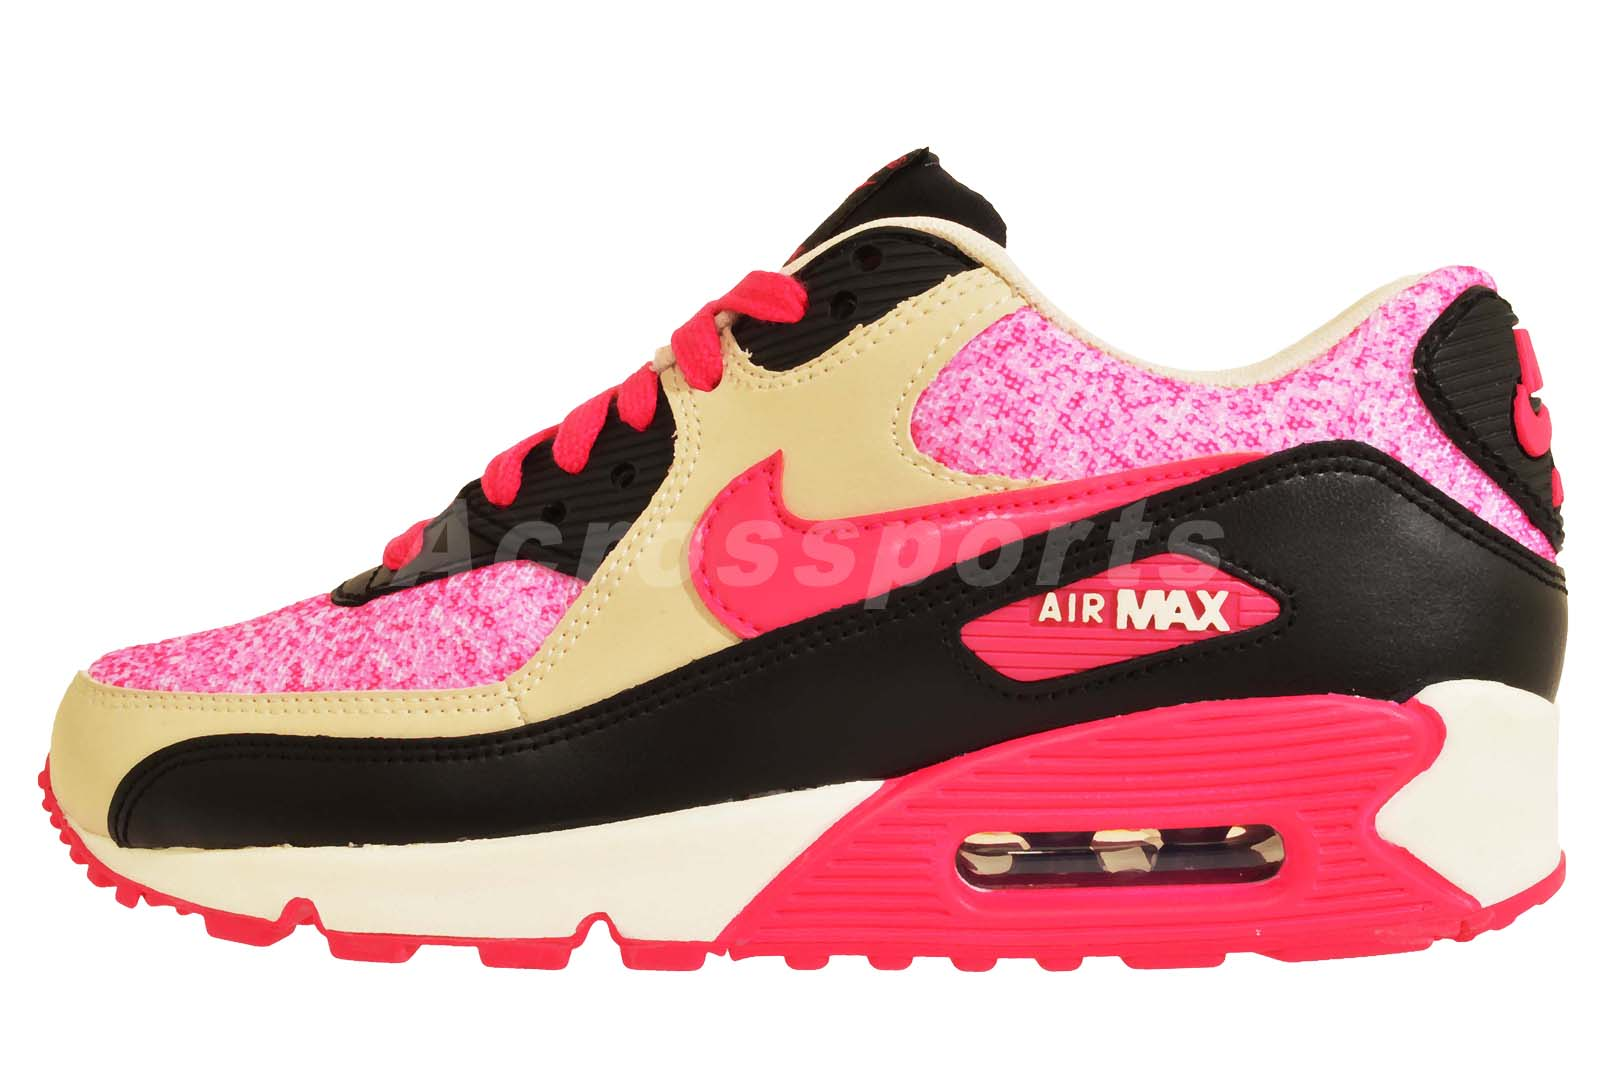 2013 Nike Air Max Girls